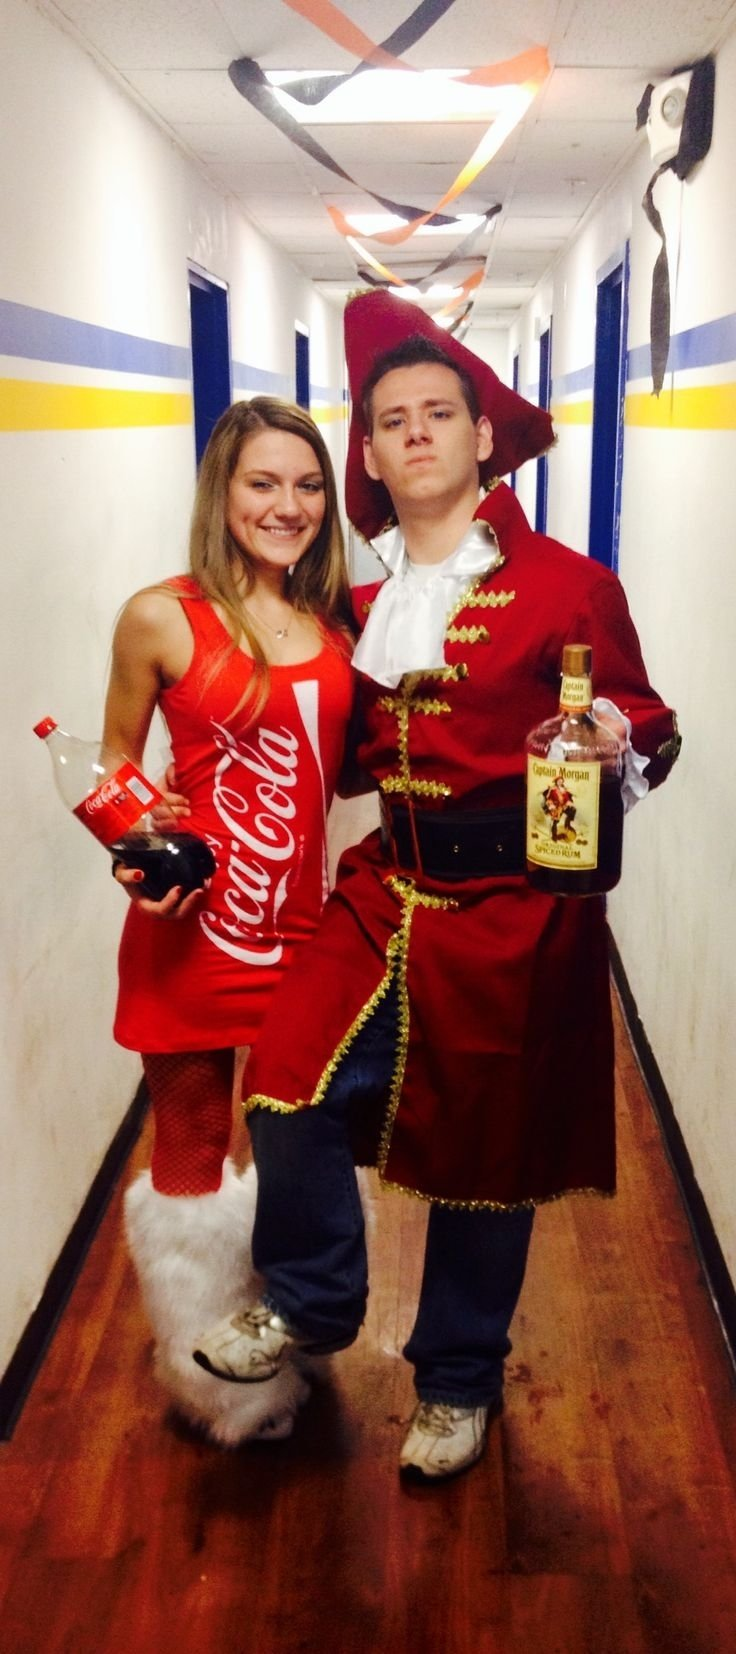 10 Best Unique Couple Halloween Costume Ideas 63 best pirate costumes ahoy images on pinterest adult costumes